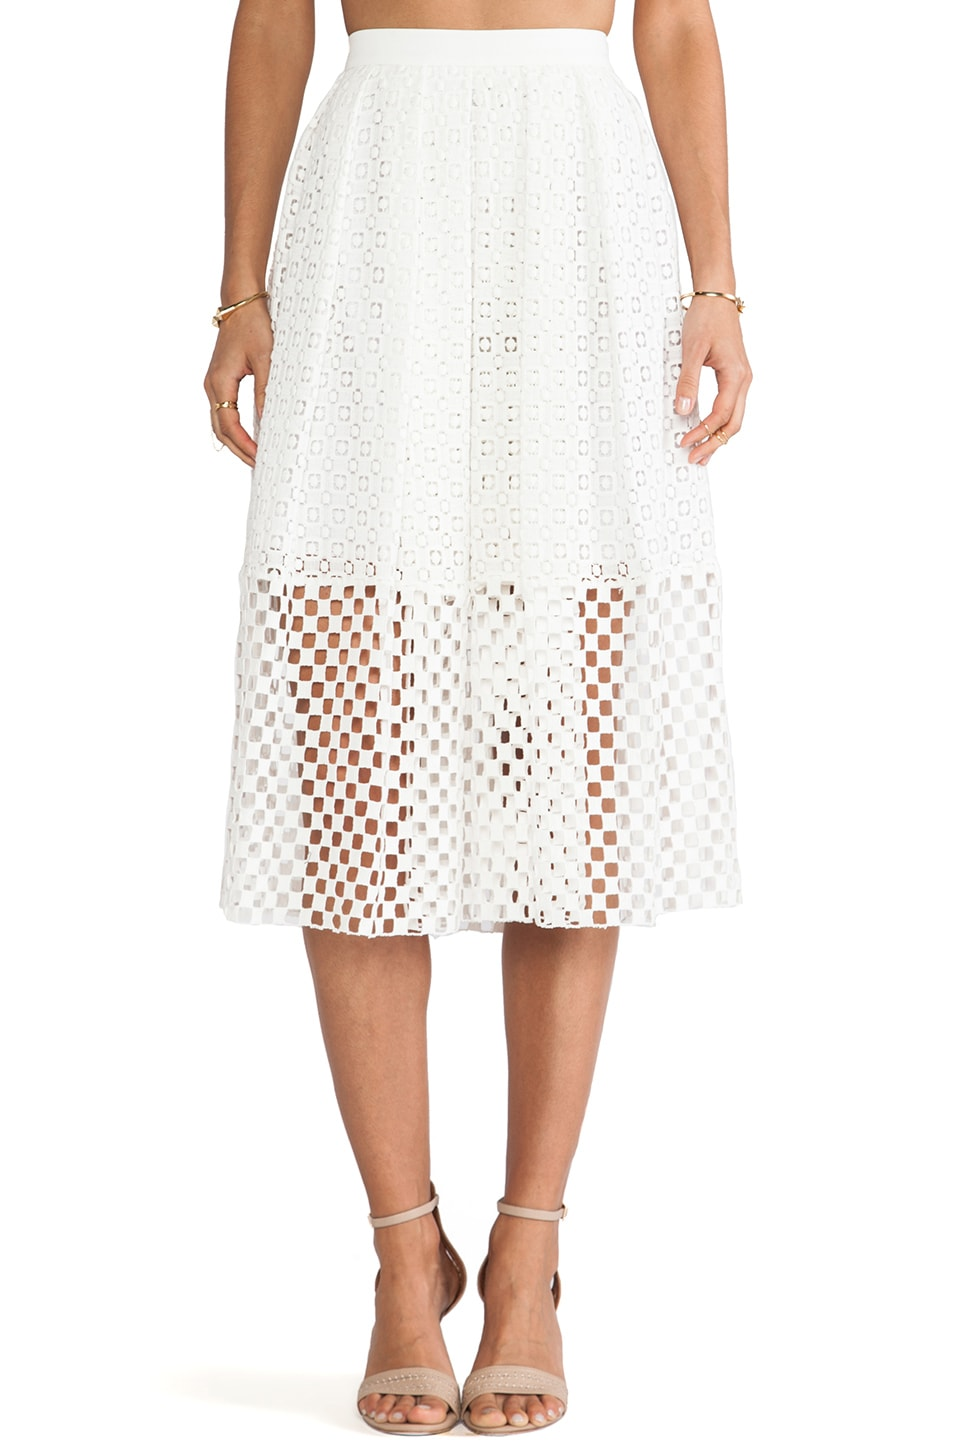 Tibi Sonoran Eyelet Skirt in Ivory Multi